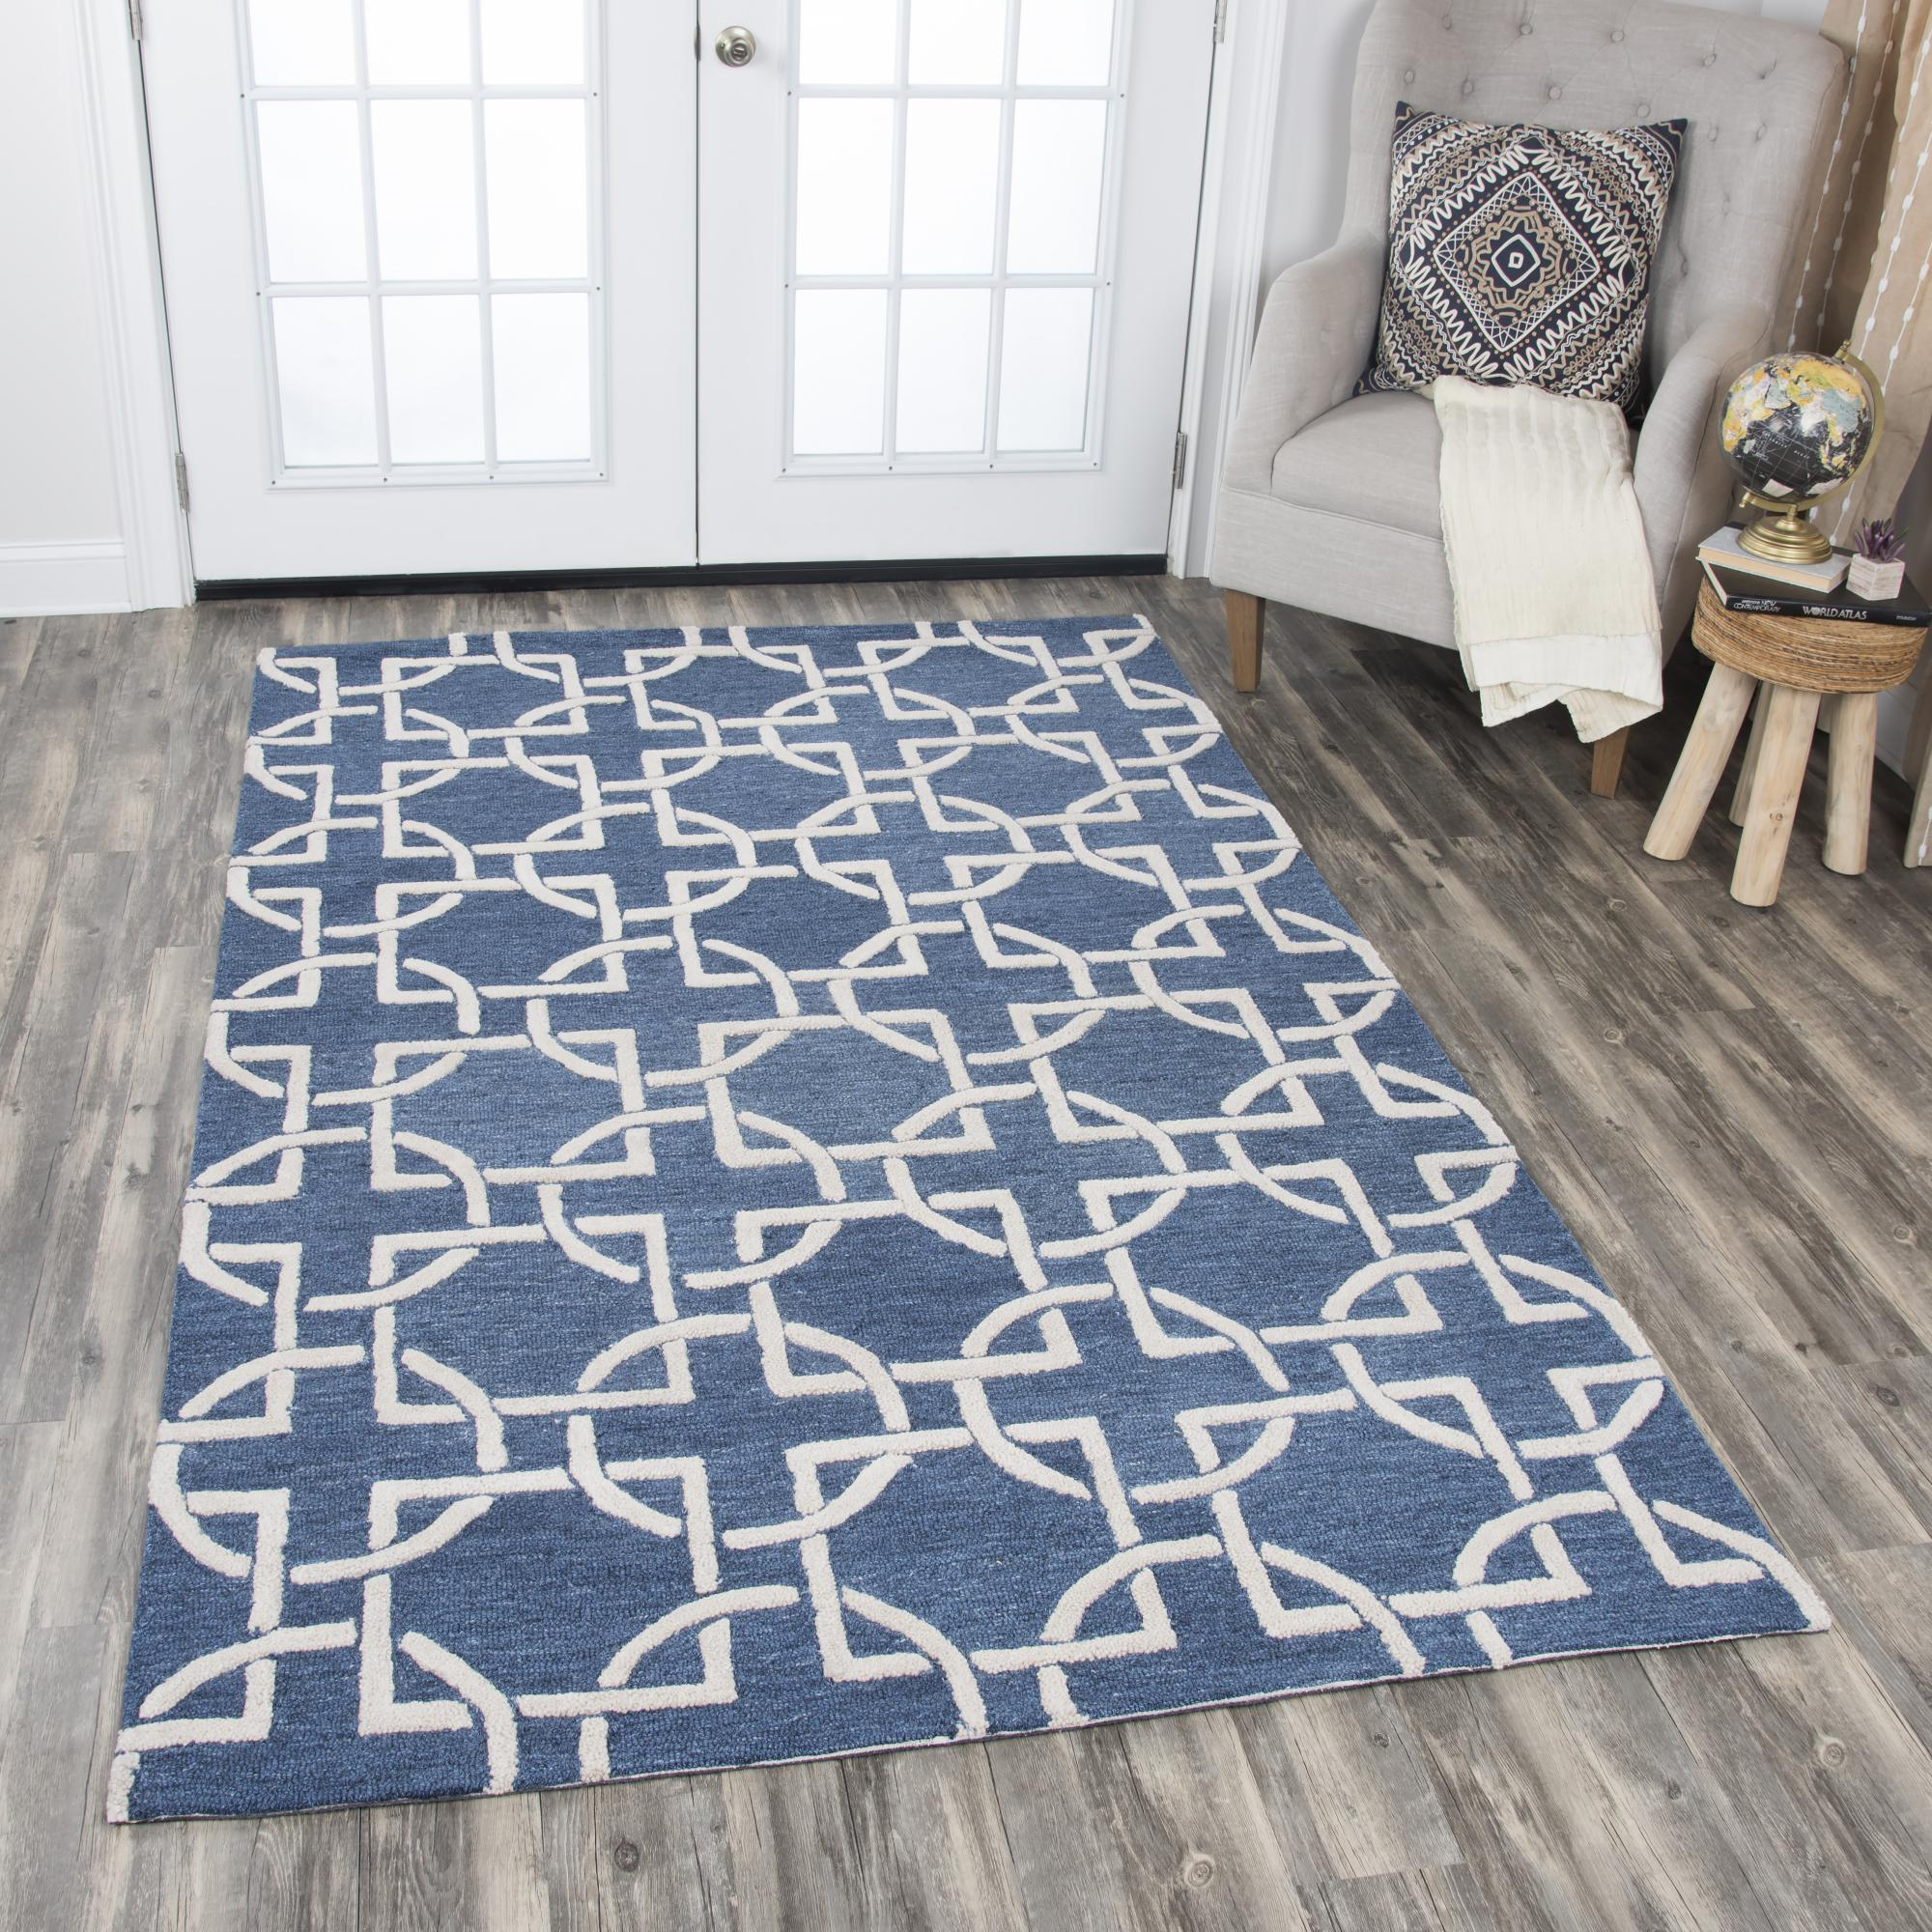 Rizzy Home Area Rugs Idyllic Area Rugs ID880A Blue 100% Wool India